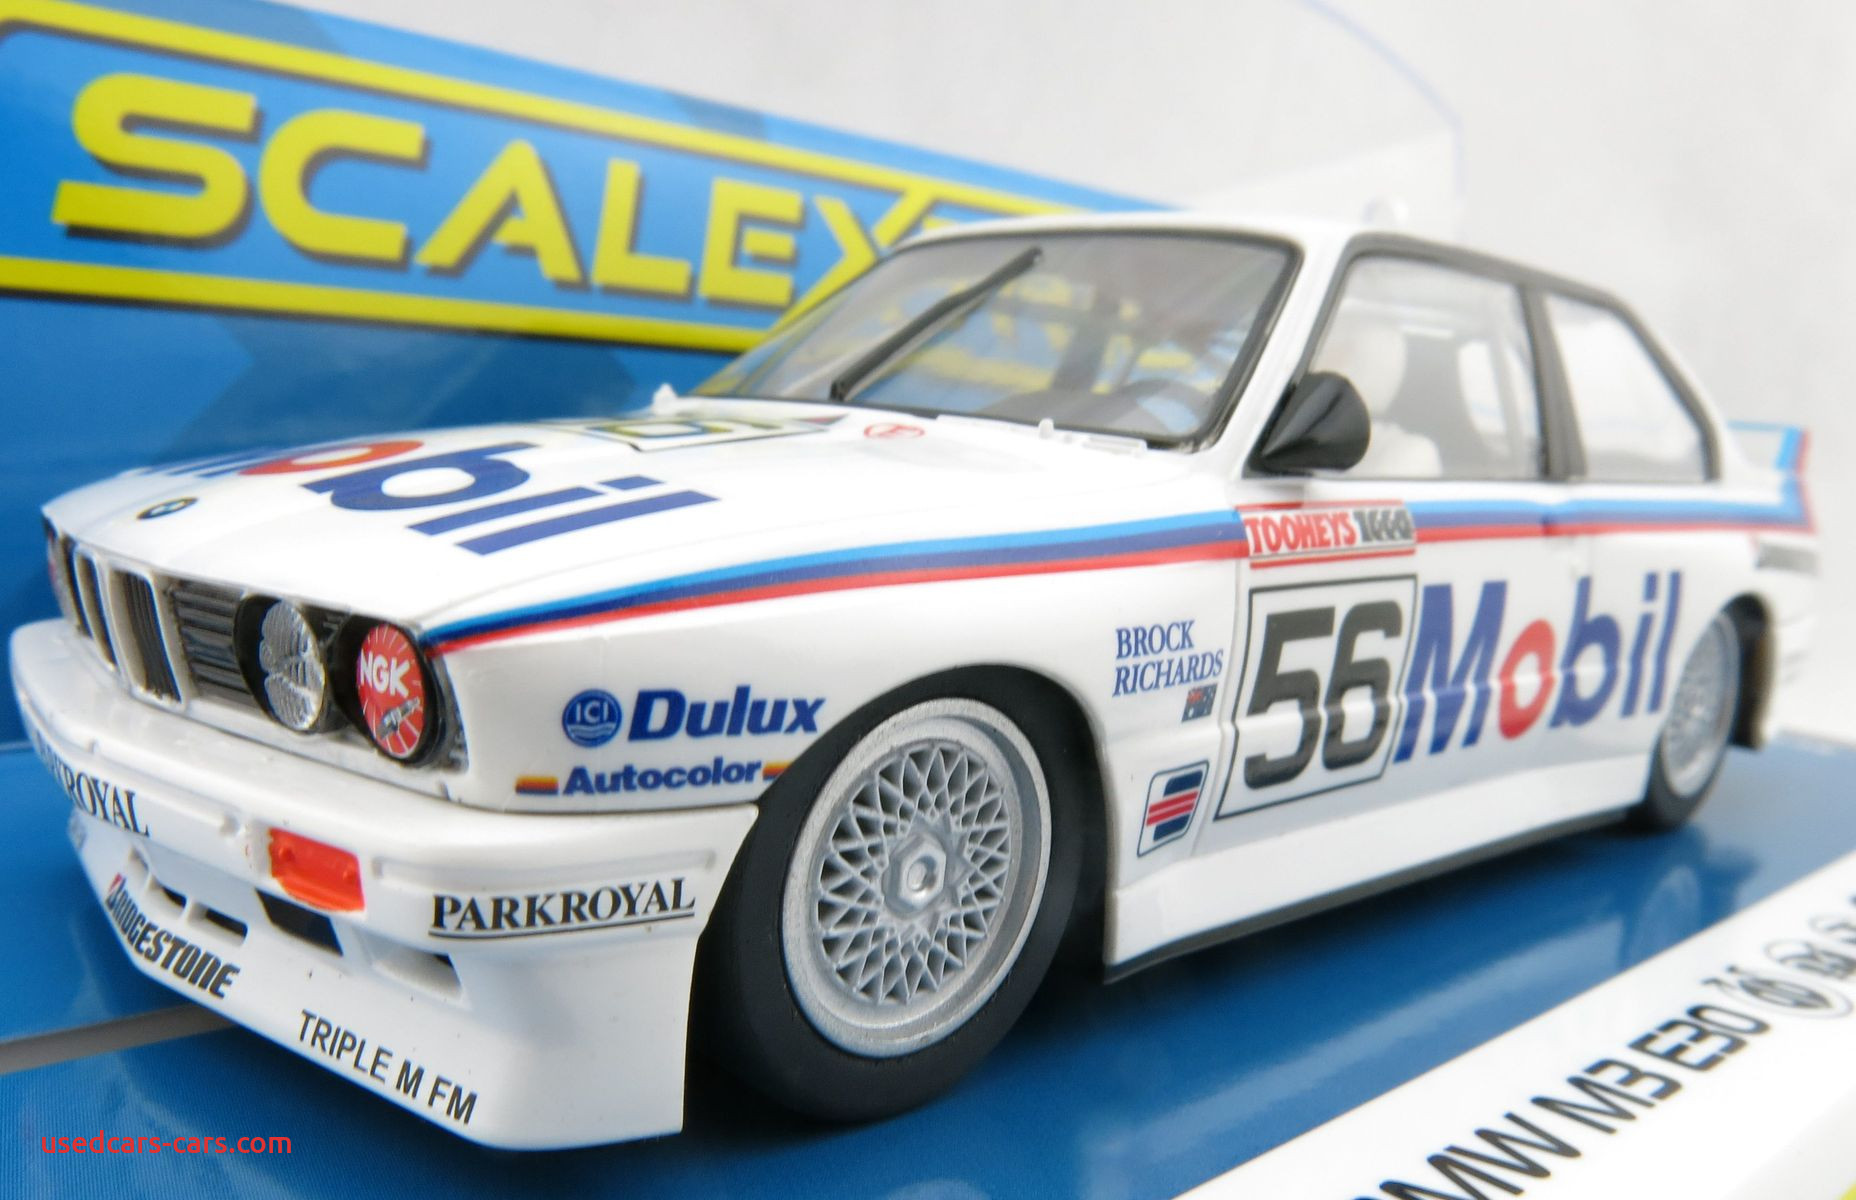 Bmw M3 1988 Awesome Details About Scalextric C3929 Bmw E30 M3 1988 Bathurst 1000 Brock Richards Scale 1 32